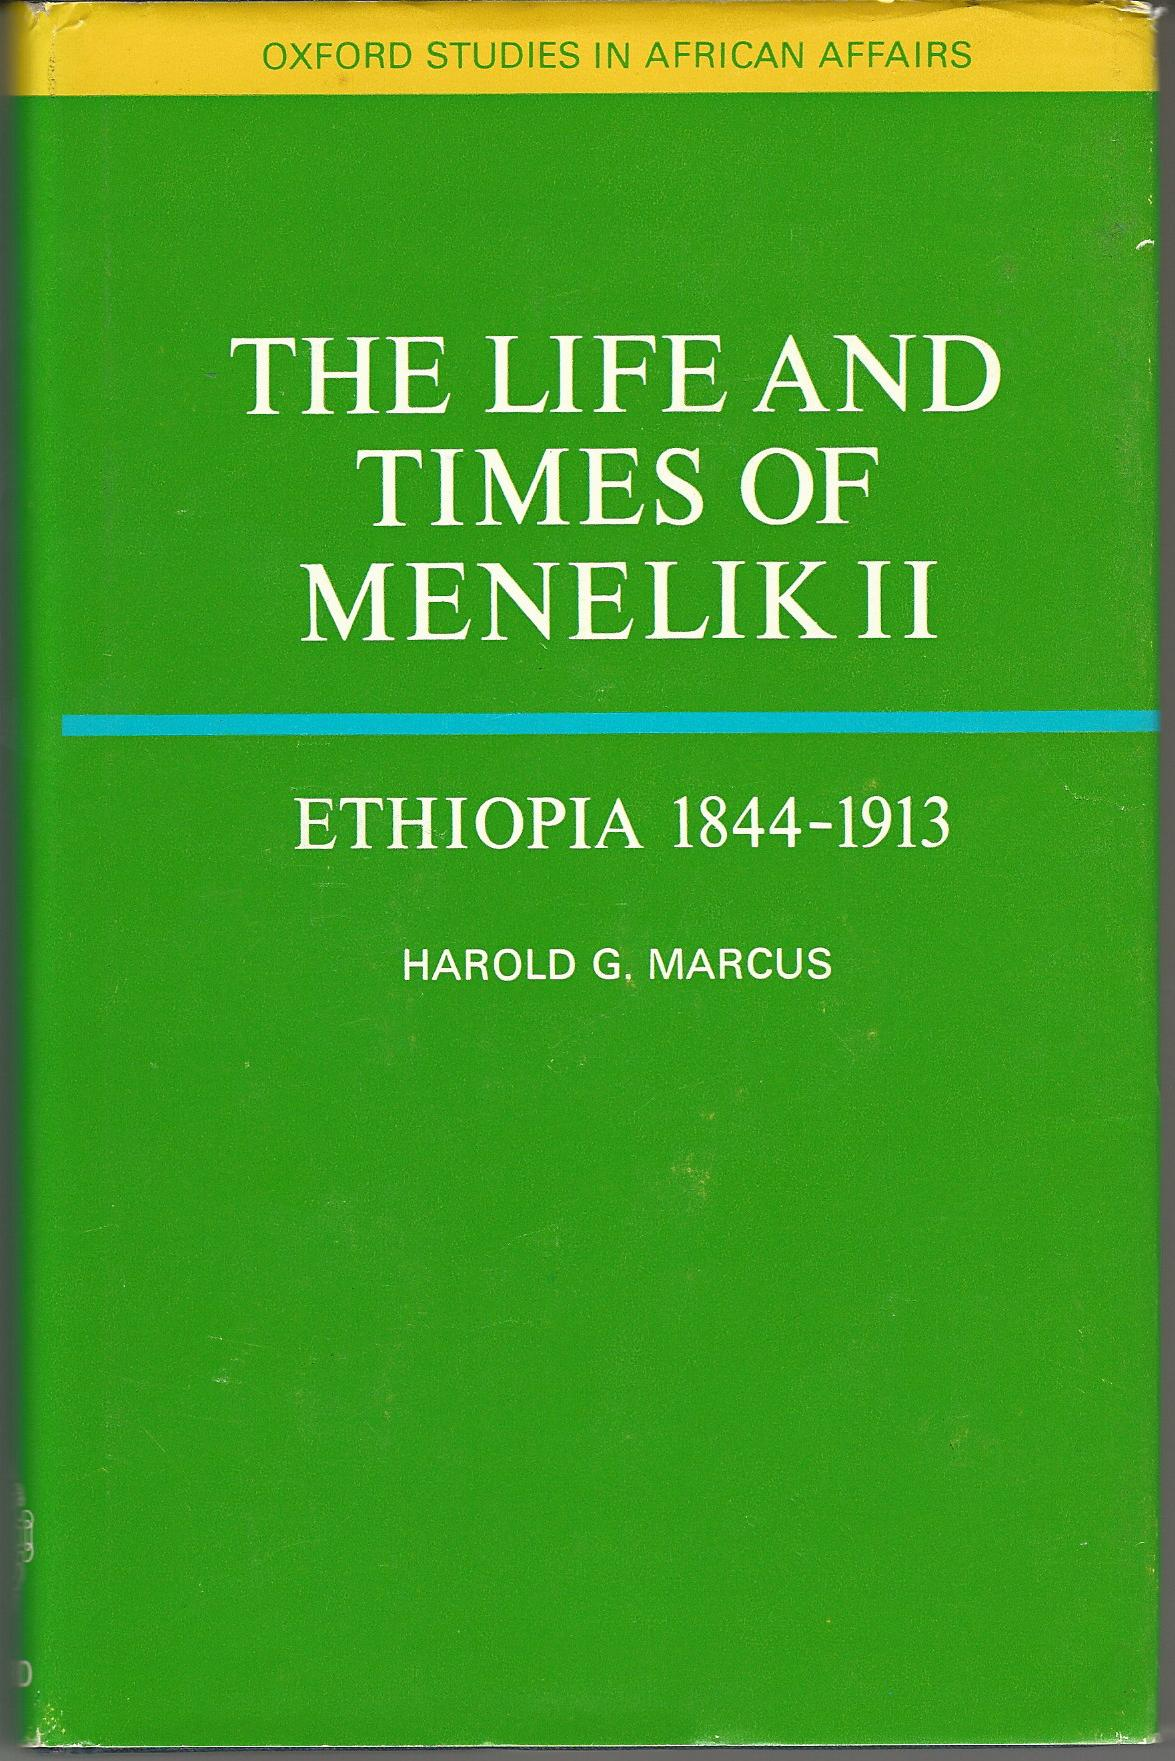 Image for Life and Times of Menelik II of Ethiopia, 1844-1913 (Study in African Affairs)